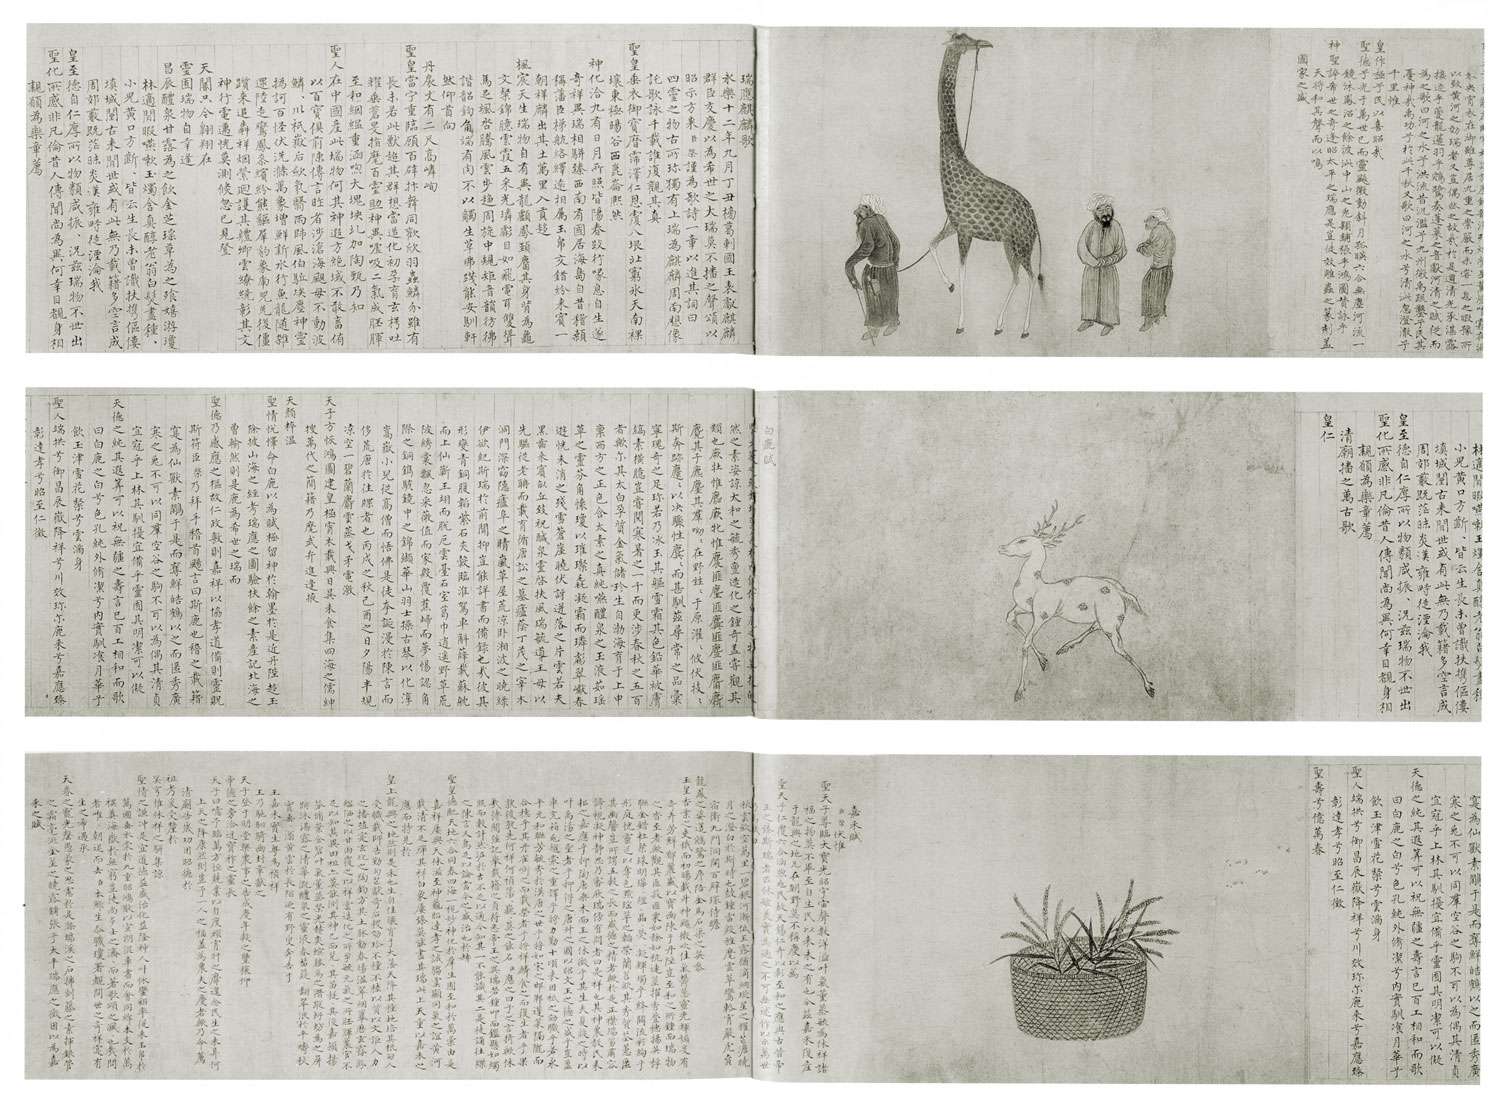 Three spreads from a book: at the top, Chinese text on the left, three men standing, one holding the leash of a giraffe on the right; in the middle, Chinese text on the left, an antelope or deer trotting leftward on the right; at the bottom, Chinese text on the left, a basket of branching stalks, probably some kind of grain, on the right